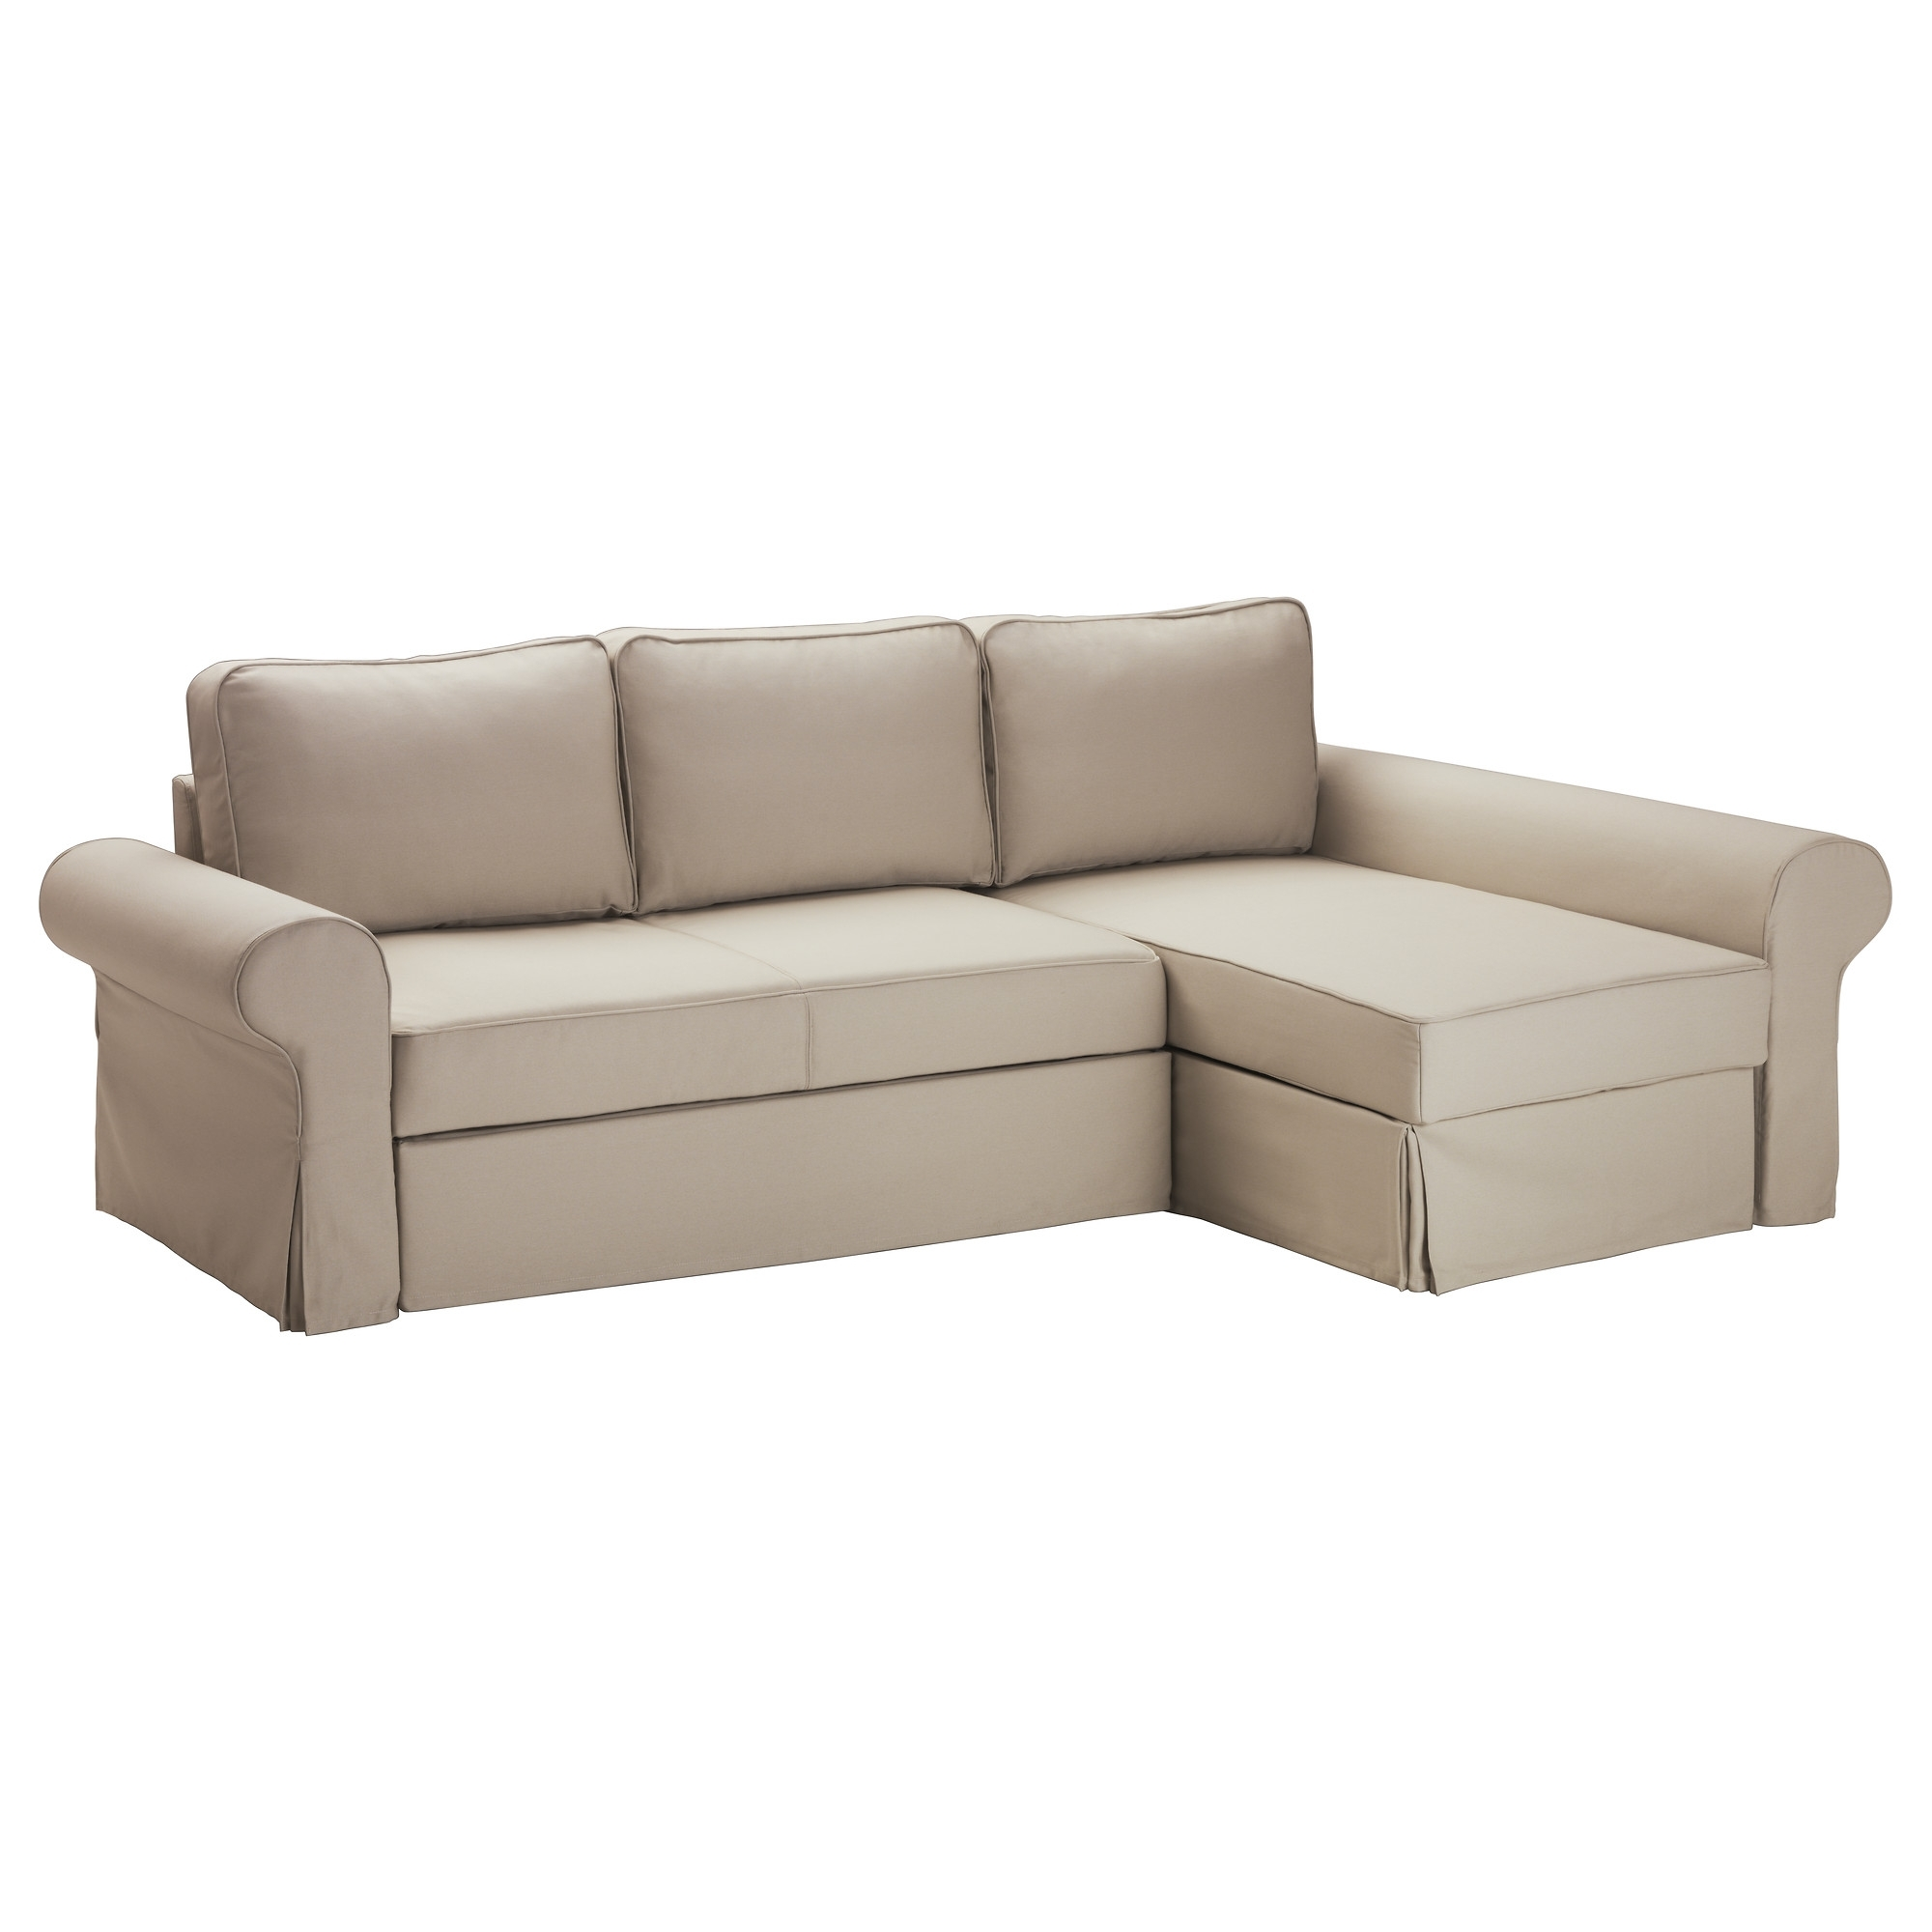 Backabro Sofa Bed With Chaise Longue – Tygelsjö Beige – Ikea Throughout Preferred Chaise Lounge Sofa Beds (View 2 of 15)